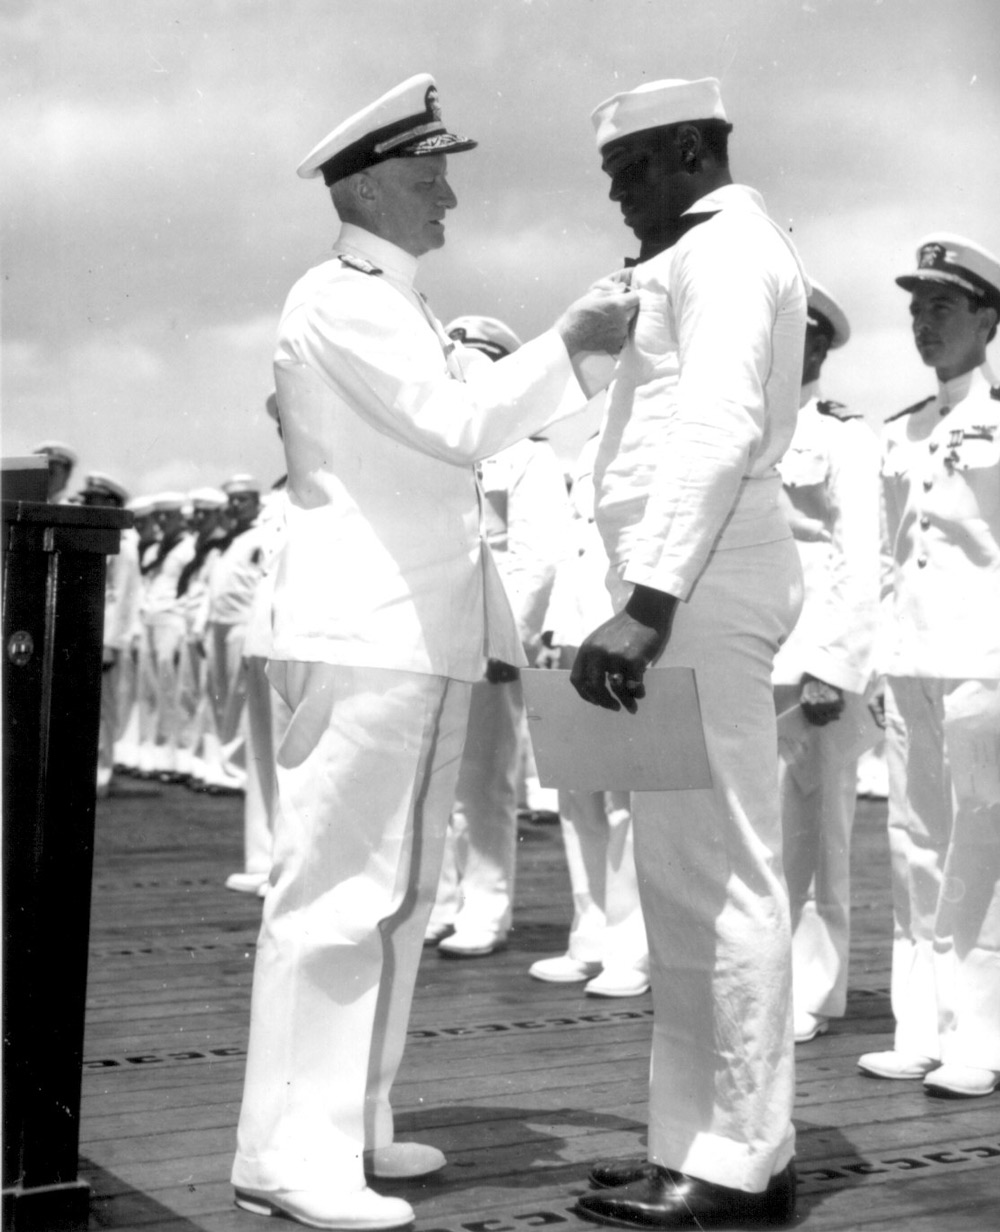 Miller was awarded the Navy Cross by Admiral Chester W. Nimitz, Commander-in-Chief of the U.S. Pacific Fleet.